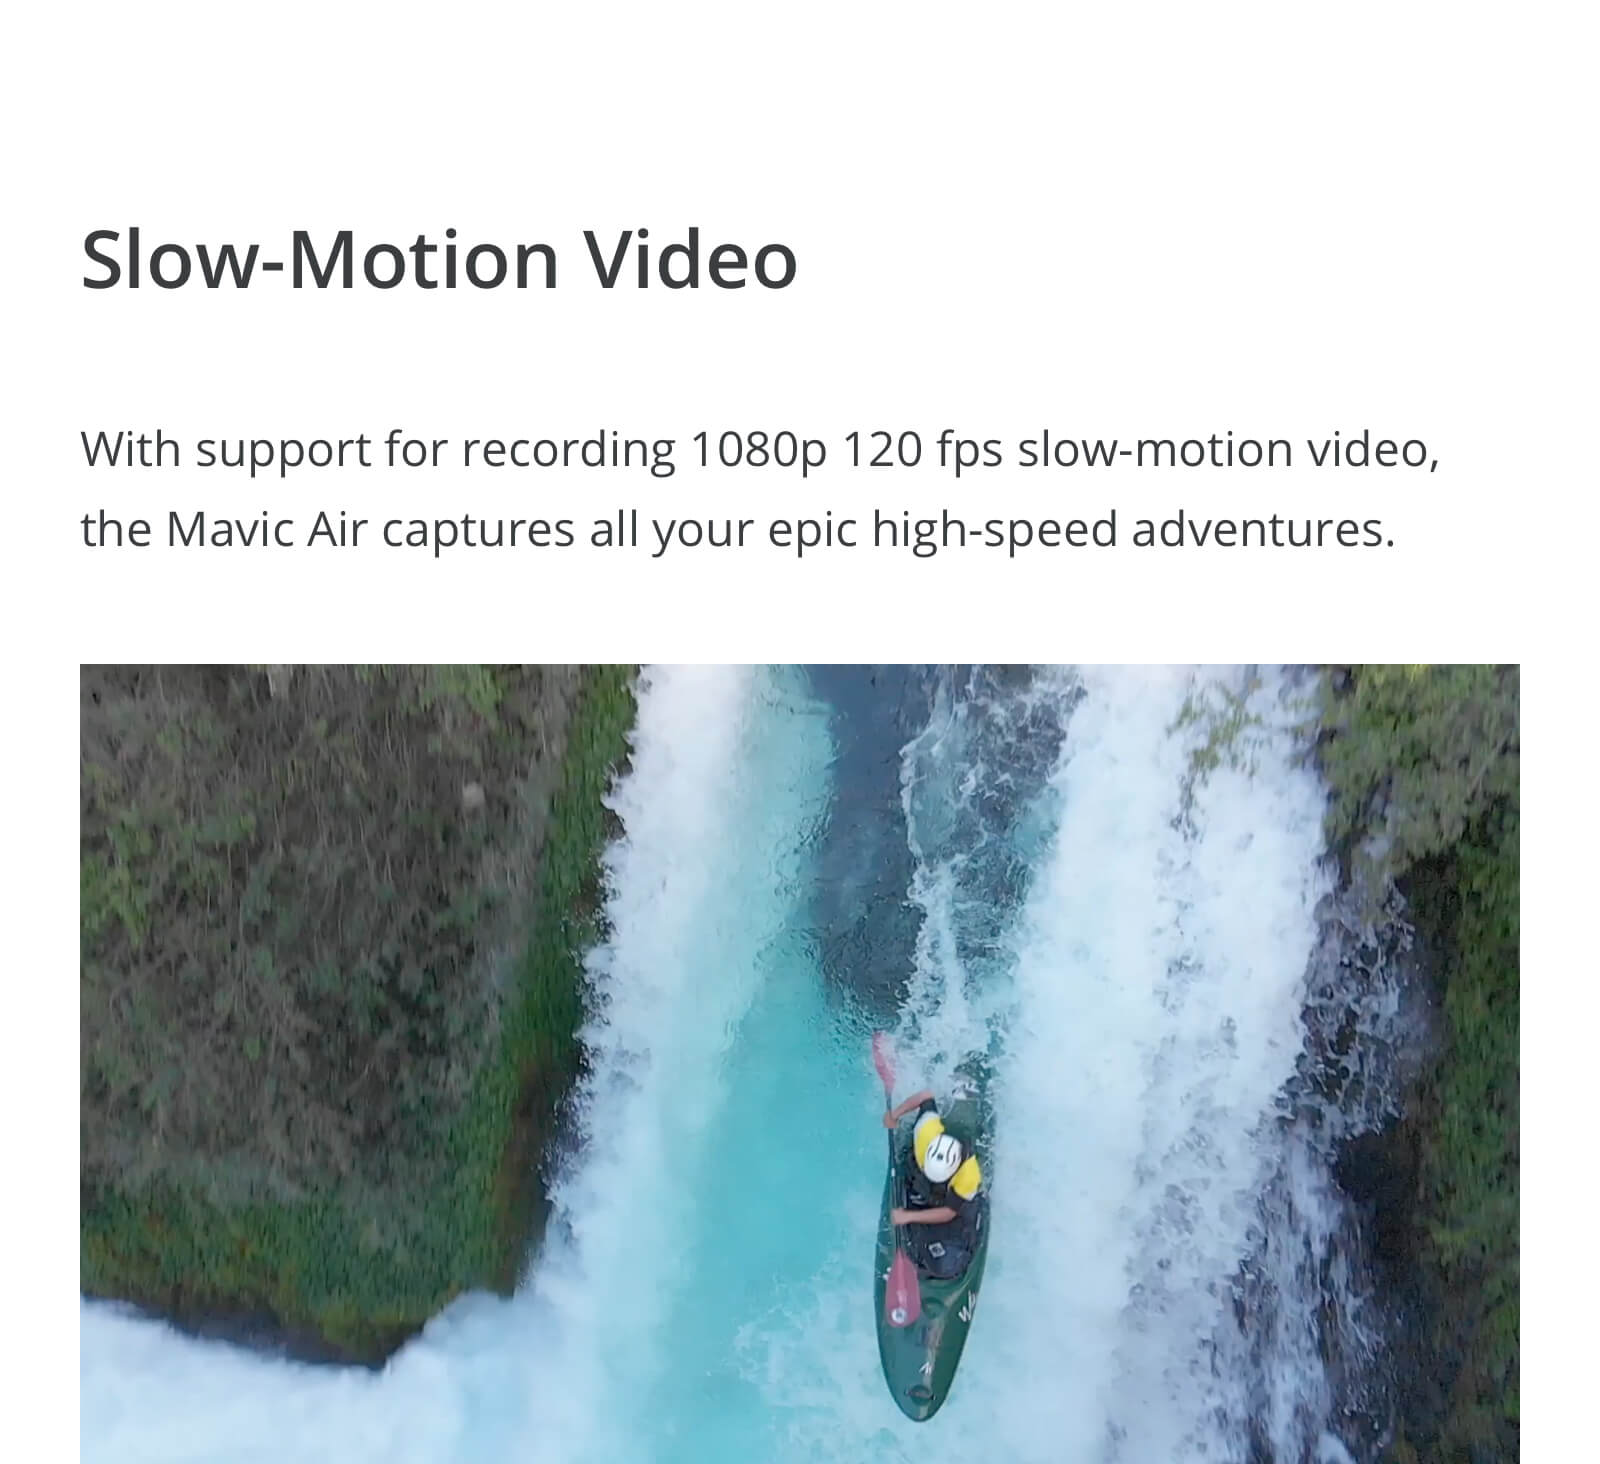 Slow-Motion Video on the DJI Mavic Air